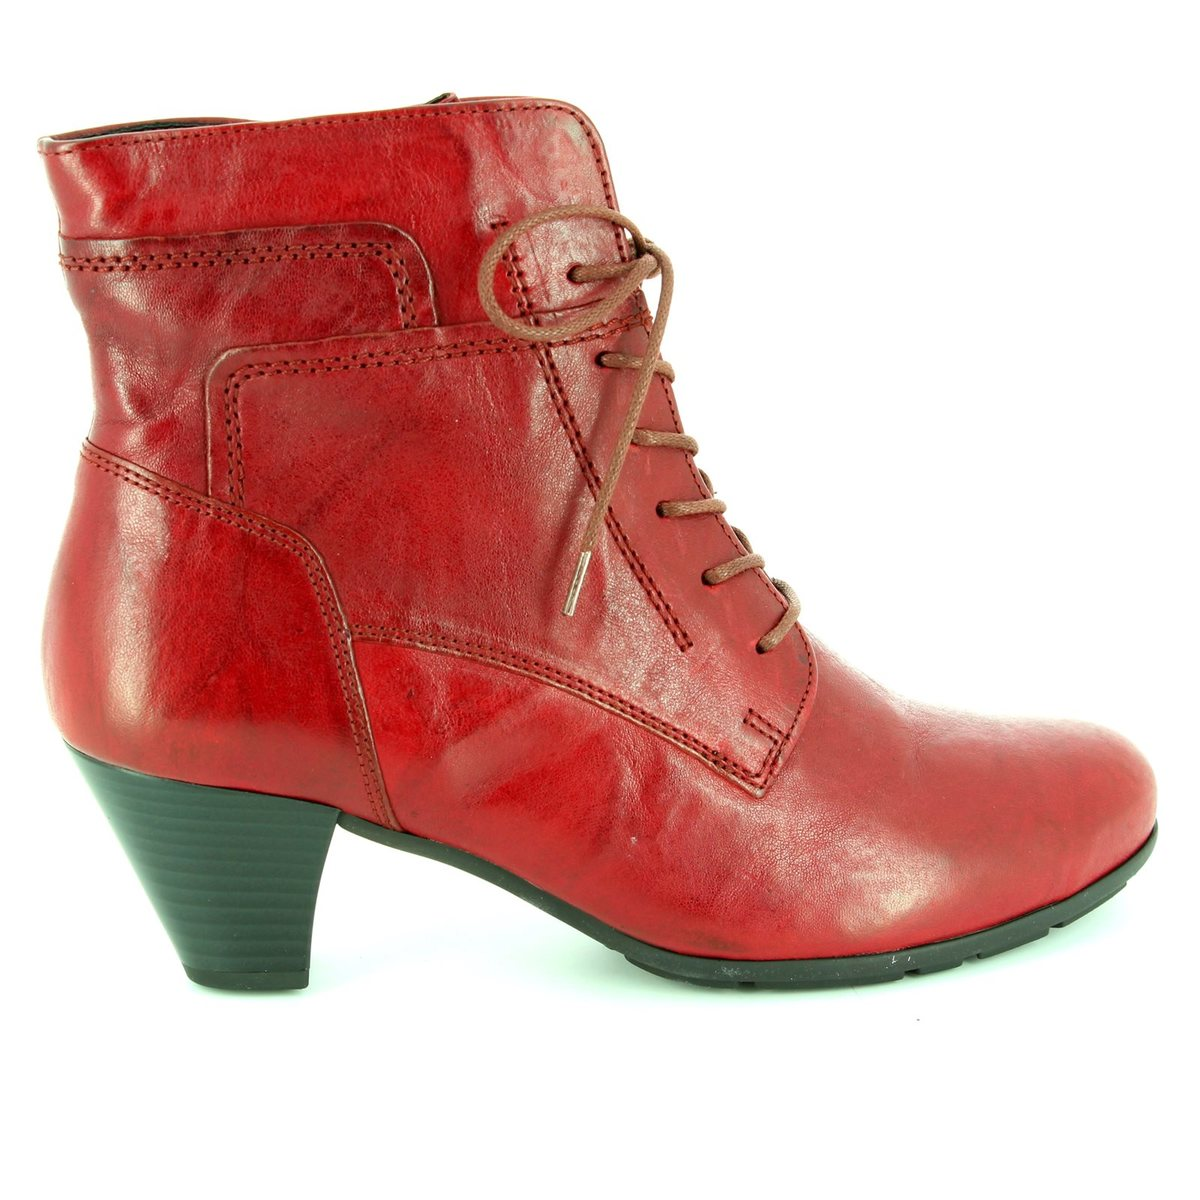 aaf89bf4e5e Gabor Ankle Boots - Dark Red - 55.644.55 NATIONAL